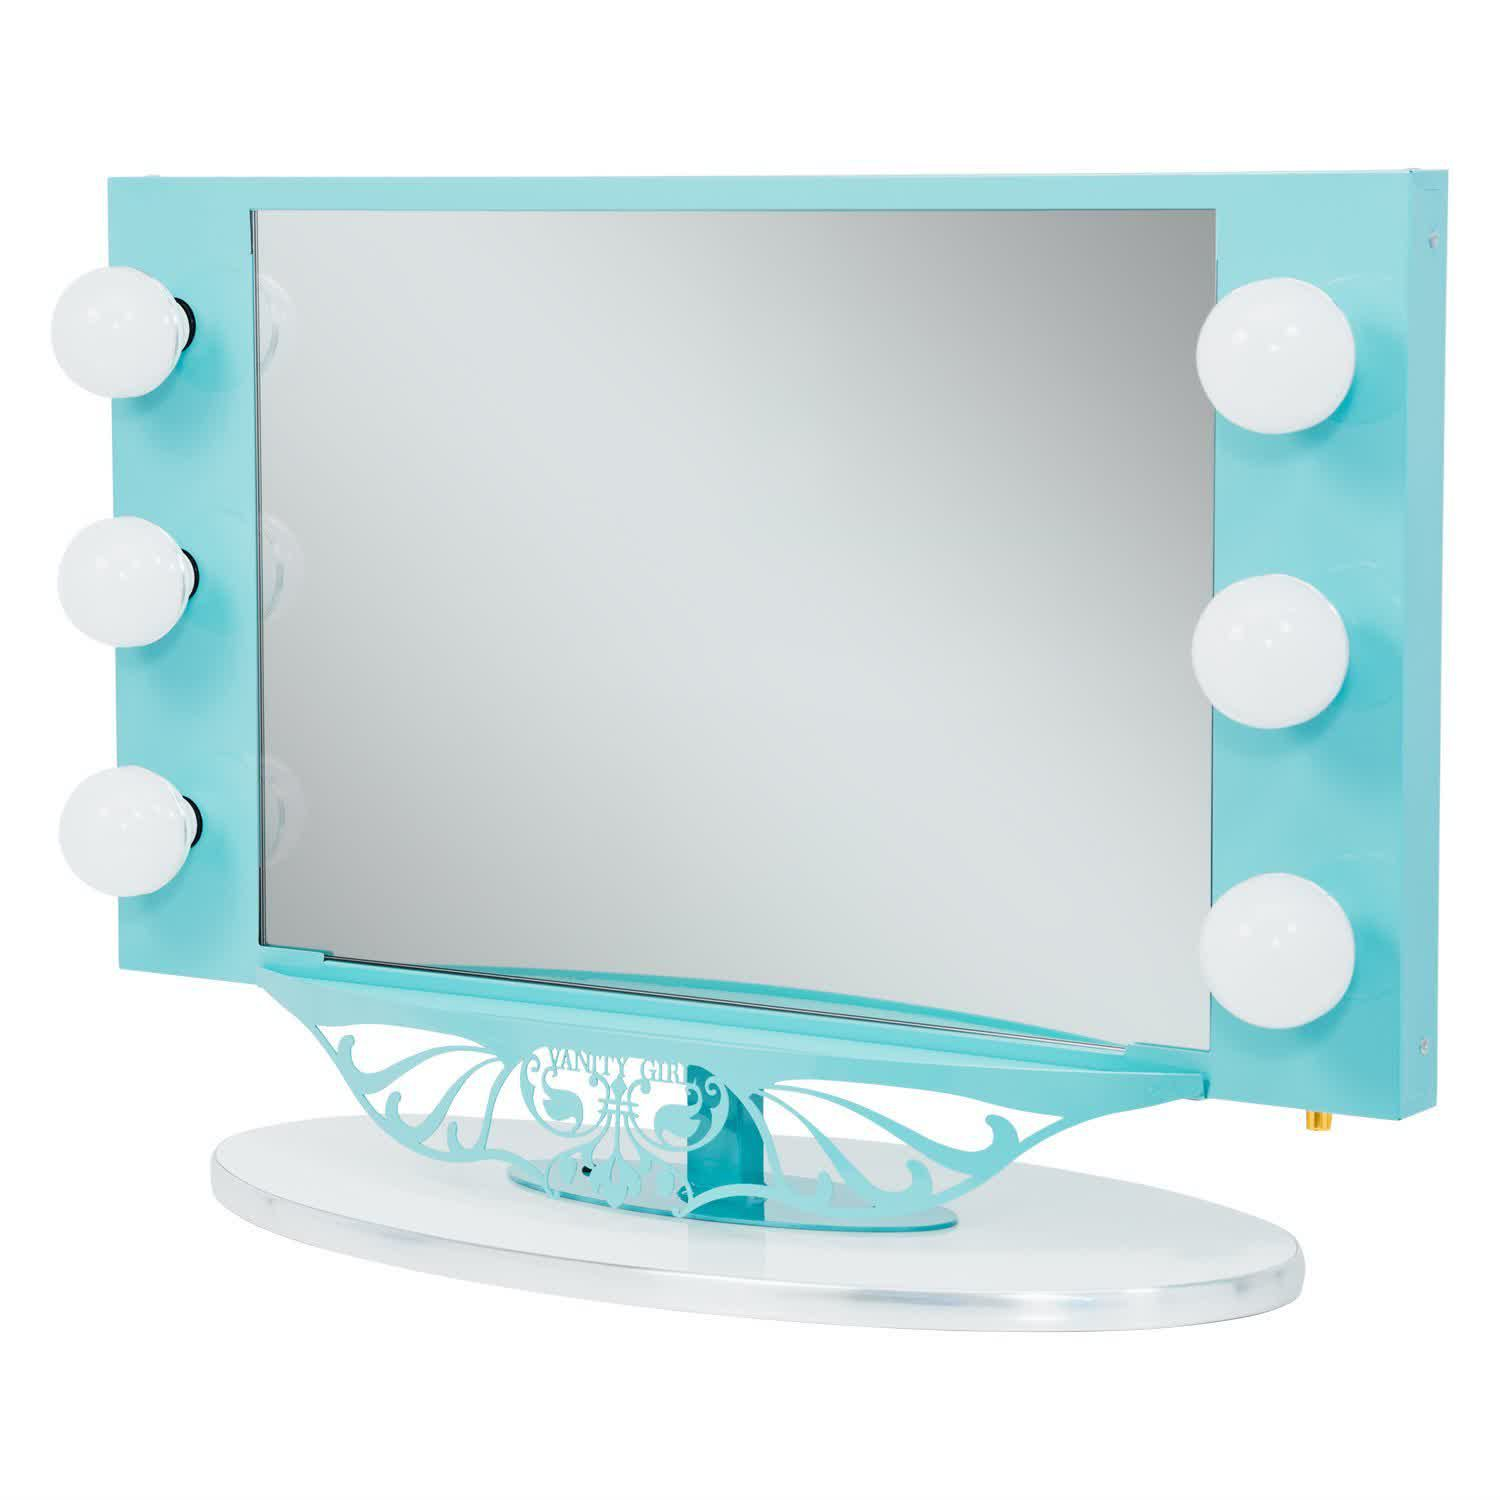 Starlet Lighted Vanity Mirror - Gloss Teal